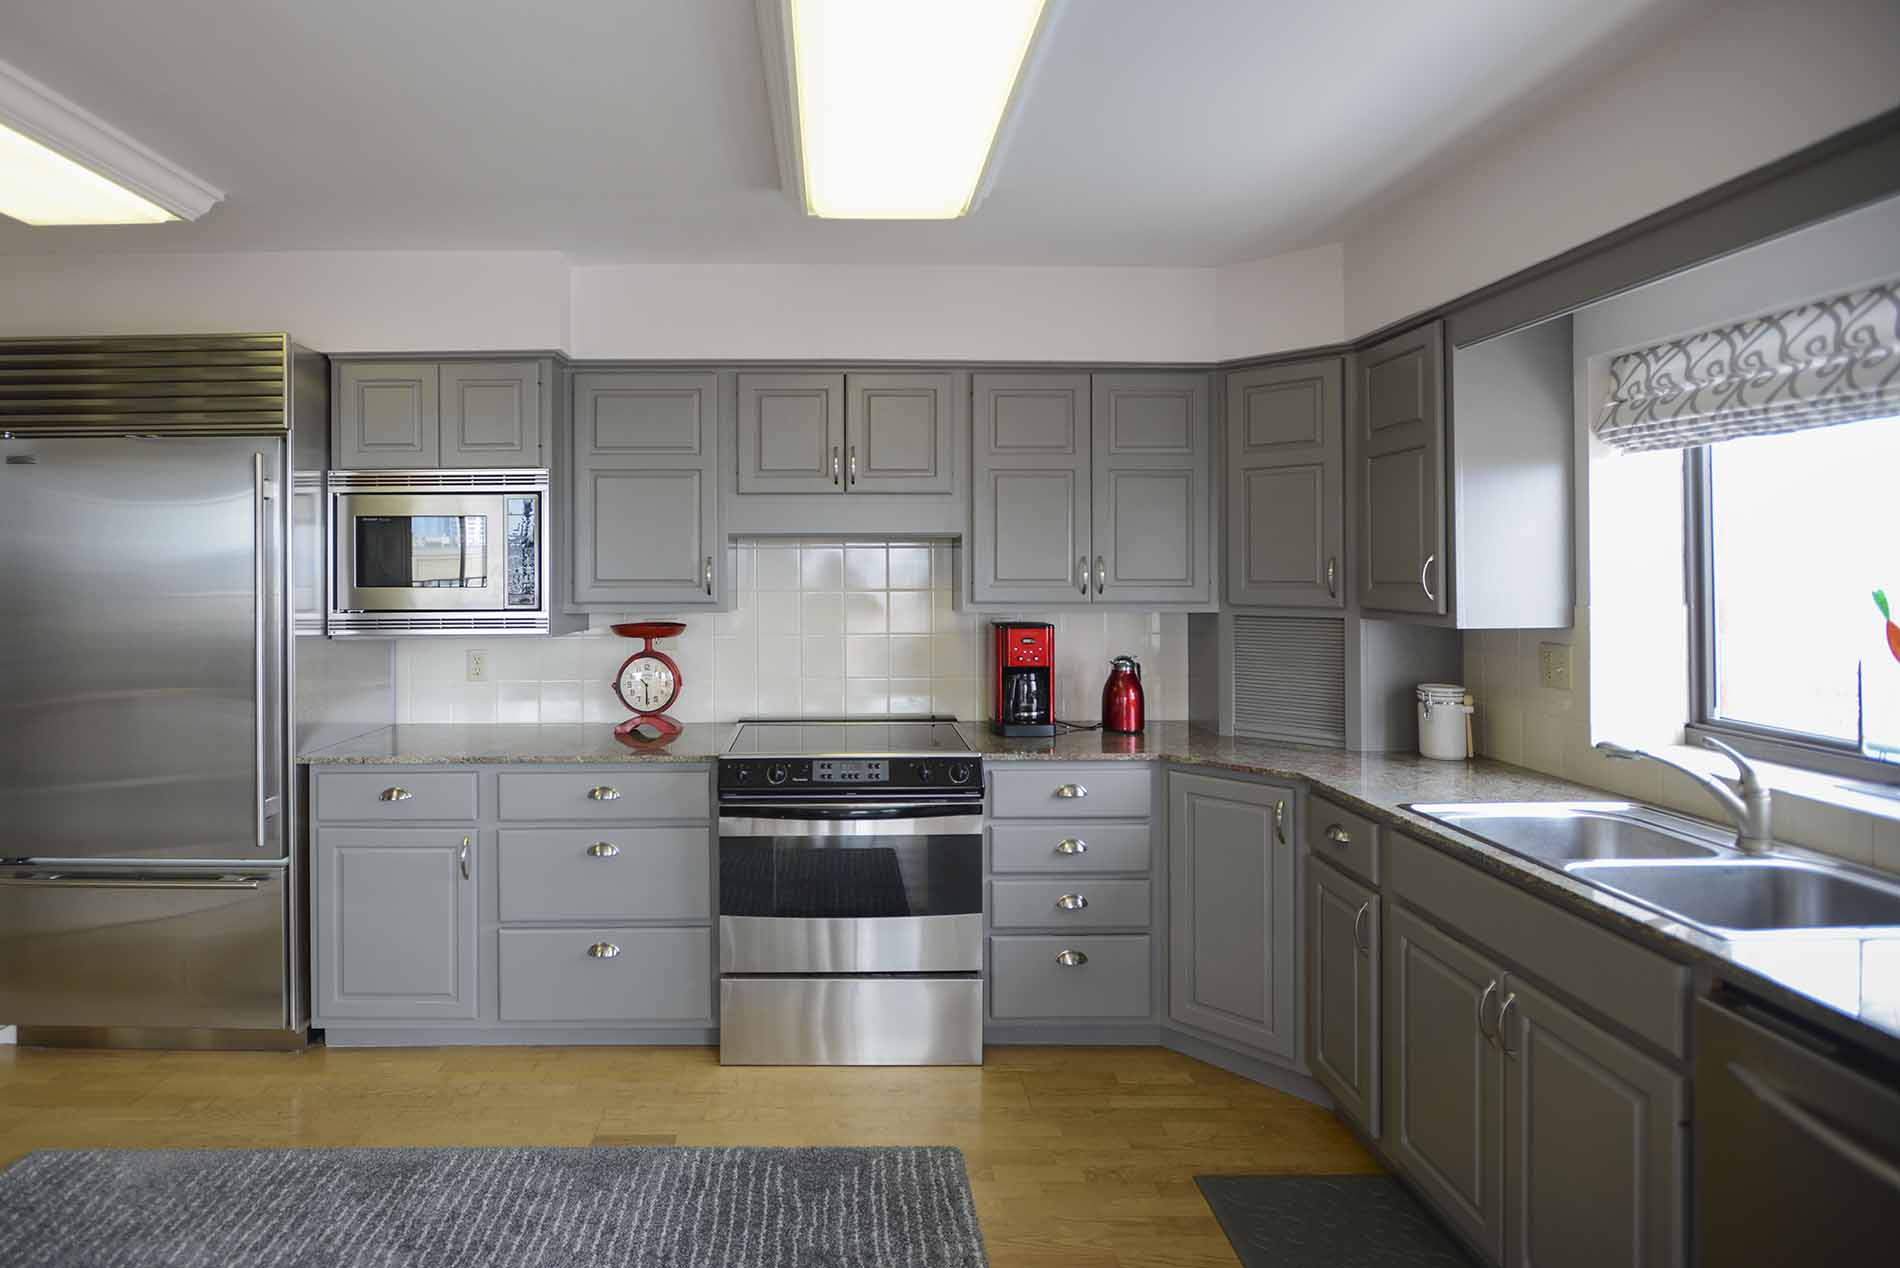 How To Prep Kitchen Cabinets For Painting Painting Kitchen Cabinets White Denver Paint Contractor